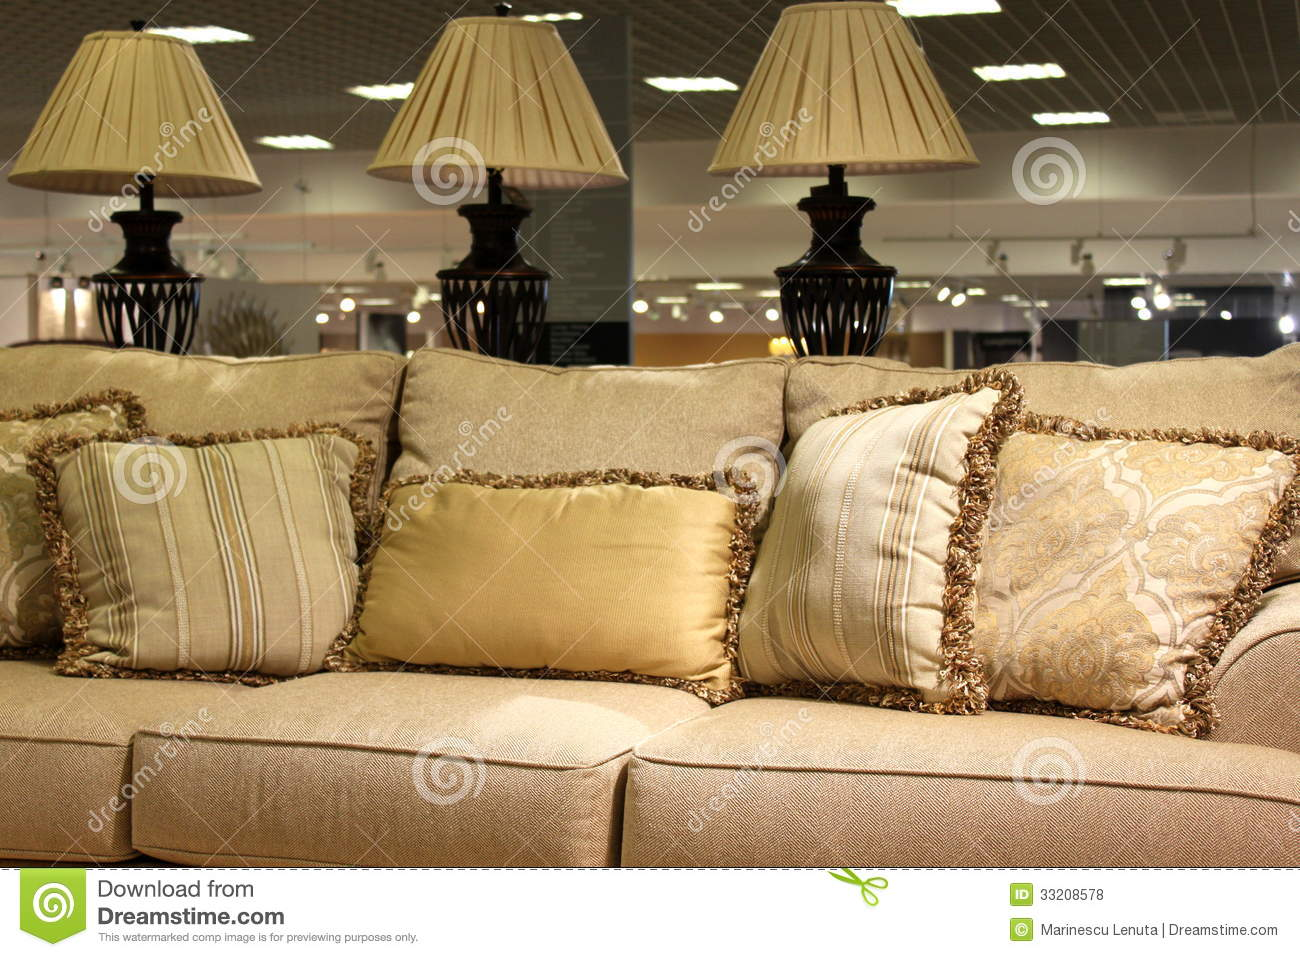 Lamps And Modern Sofa Stock Photo Image Of Live Lamps 33208578 ~ Designer Pillows For Sofa